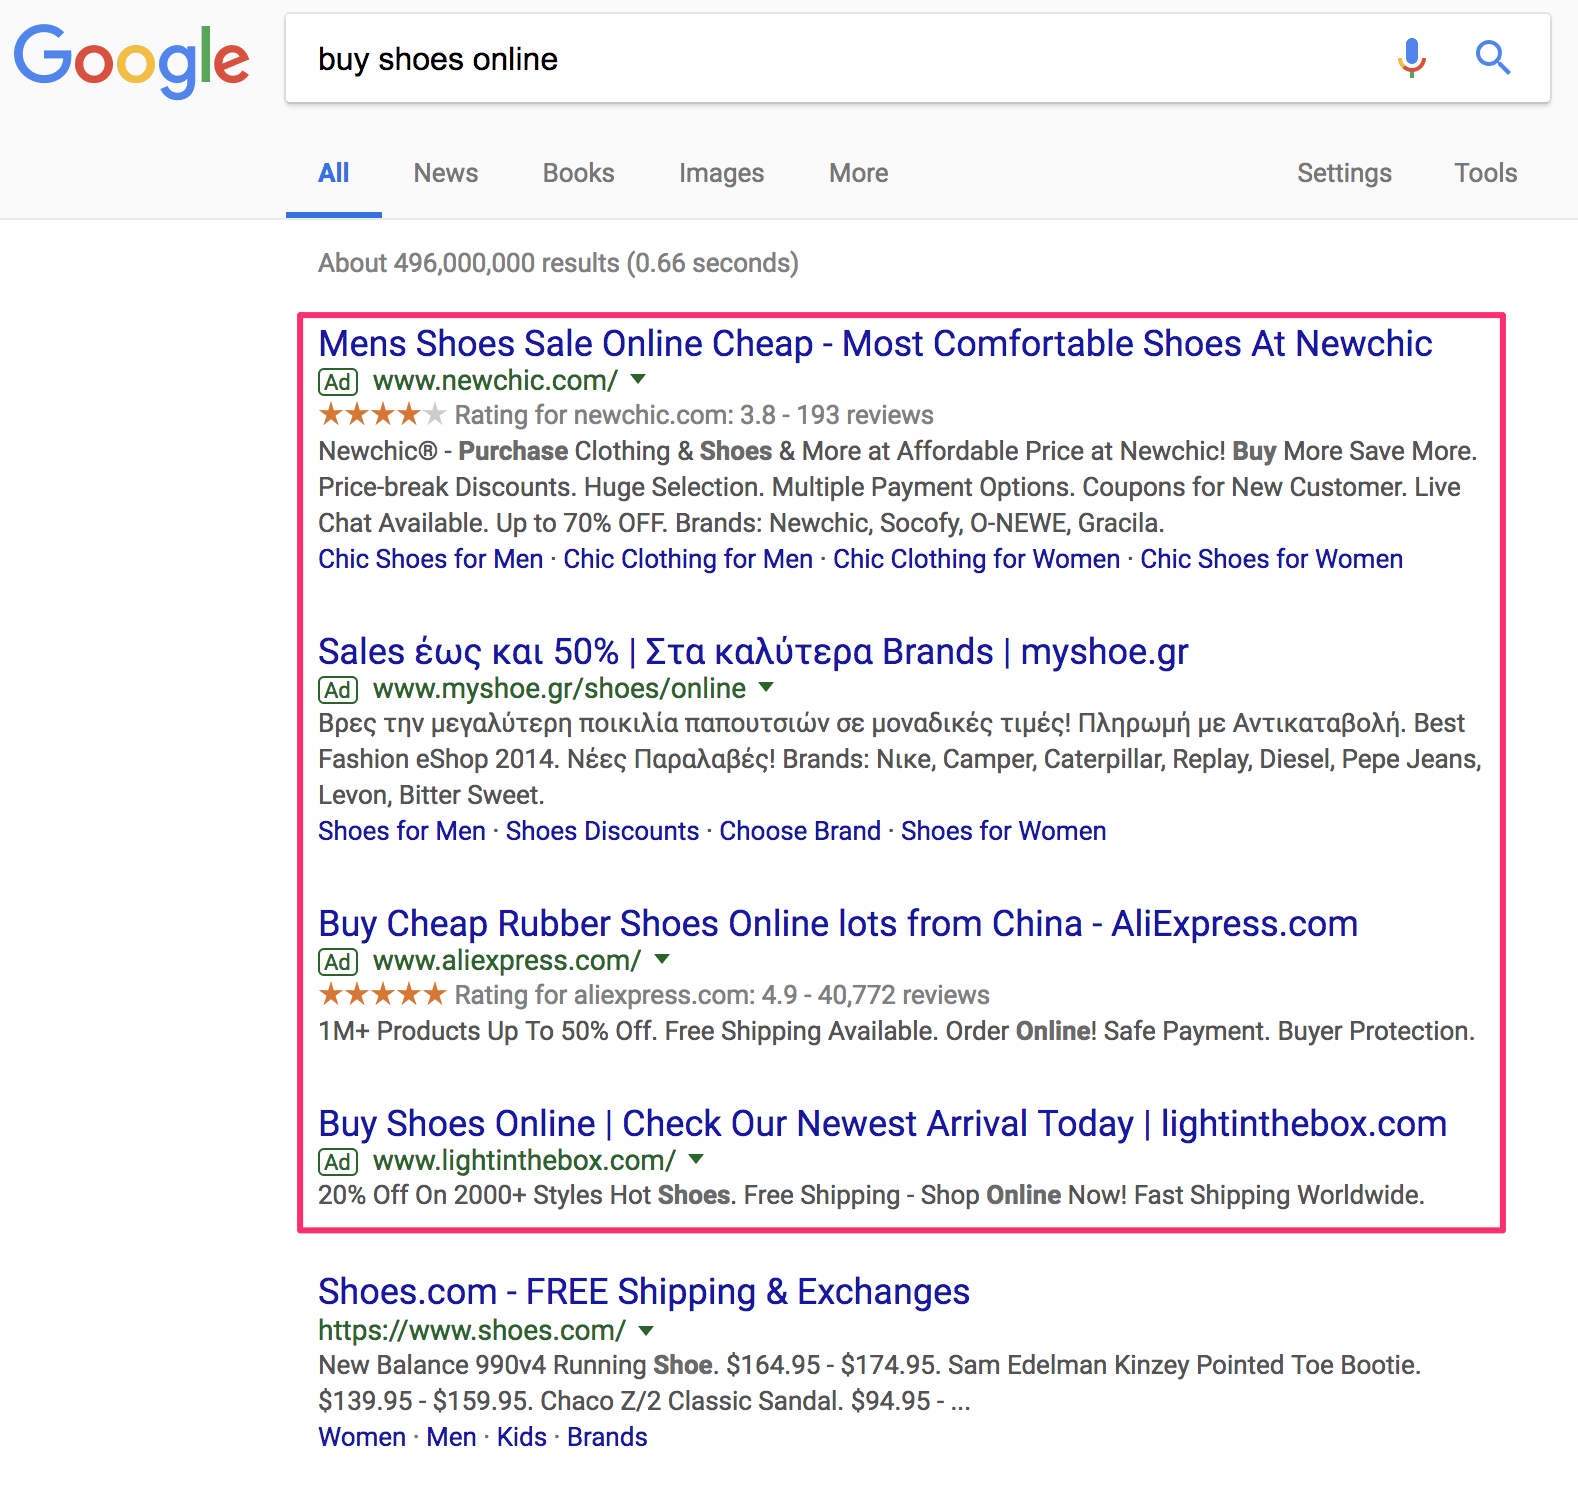 Adwords Ads in Google Search Results